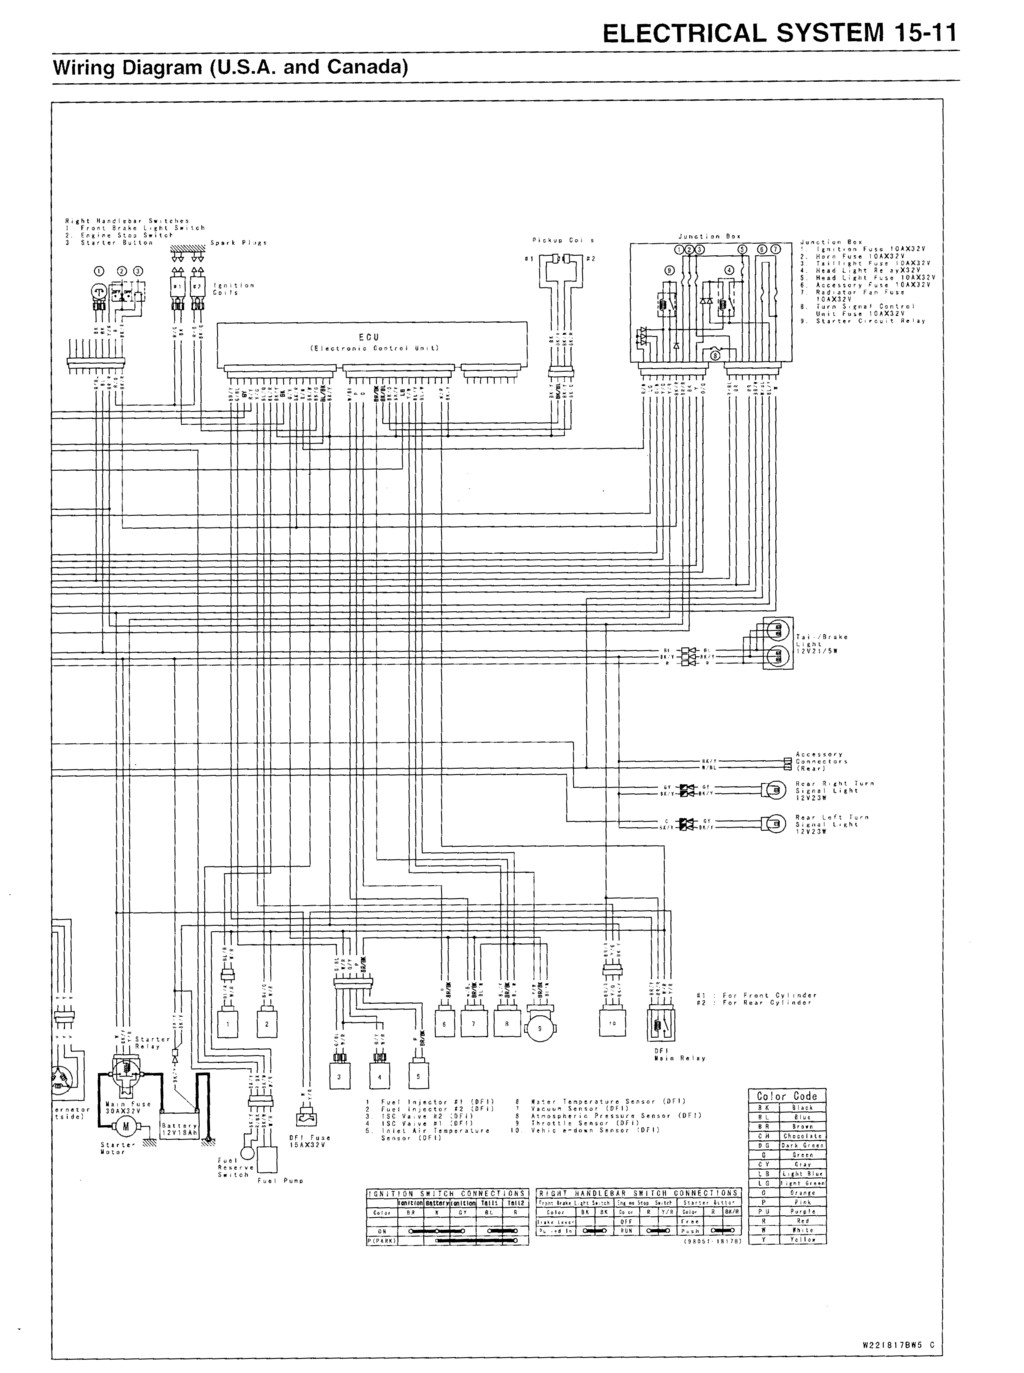 nomad_wiring_diagram_carbed_p2 vulcan wiring diagrams gadget's fixit page Kawasaki Vulcan 1500 Wiring Diagram at bayanpartner.co